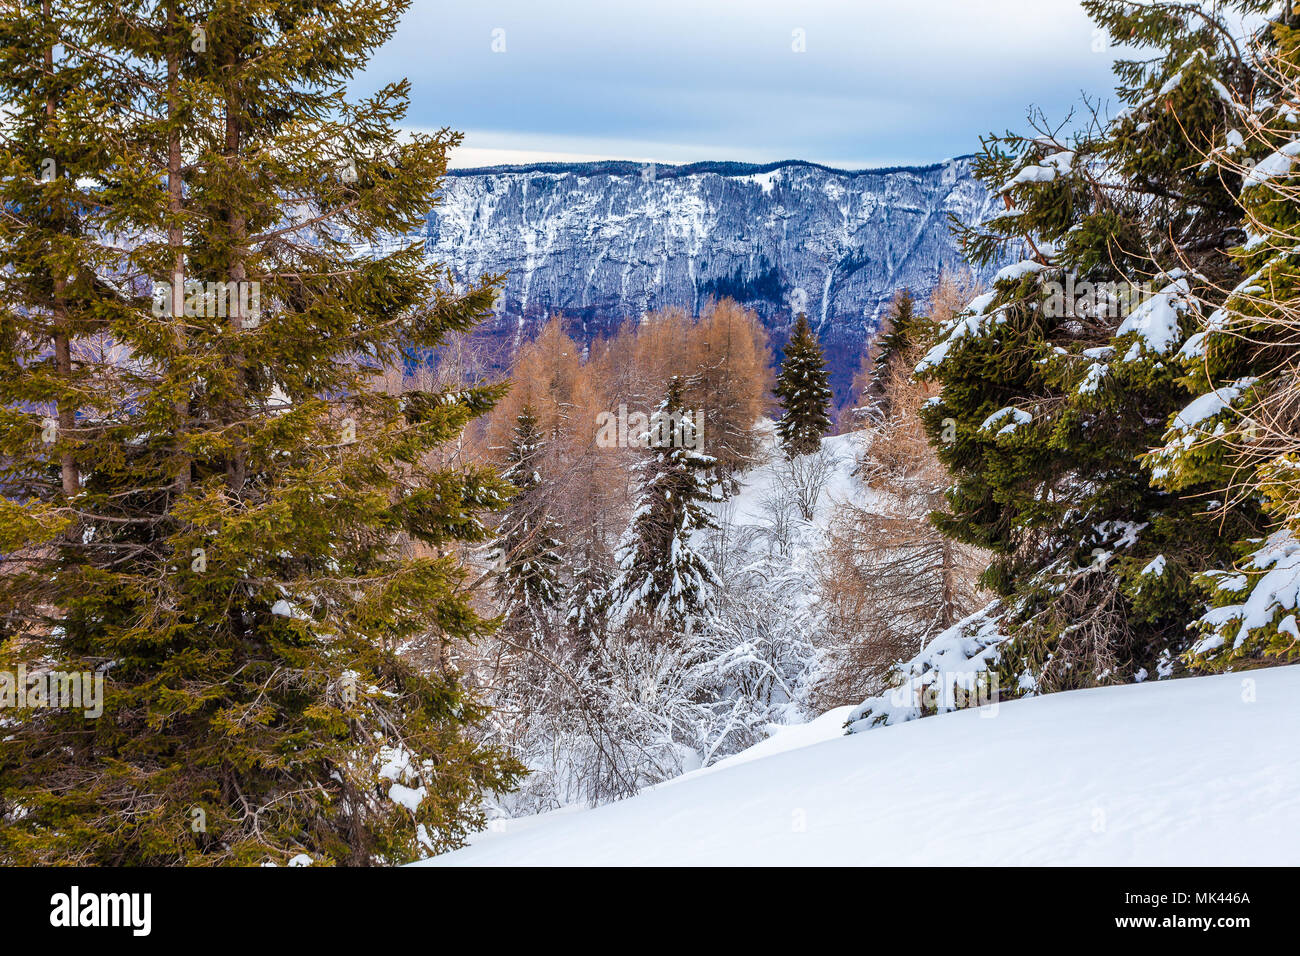 Larches and spruces forest on a snowy slope, Col Visentin, Belluno, Veneto, Italy - Stock Image